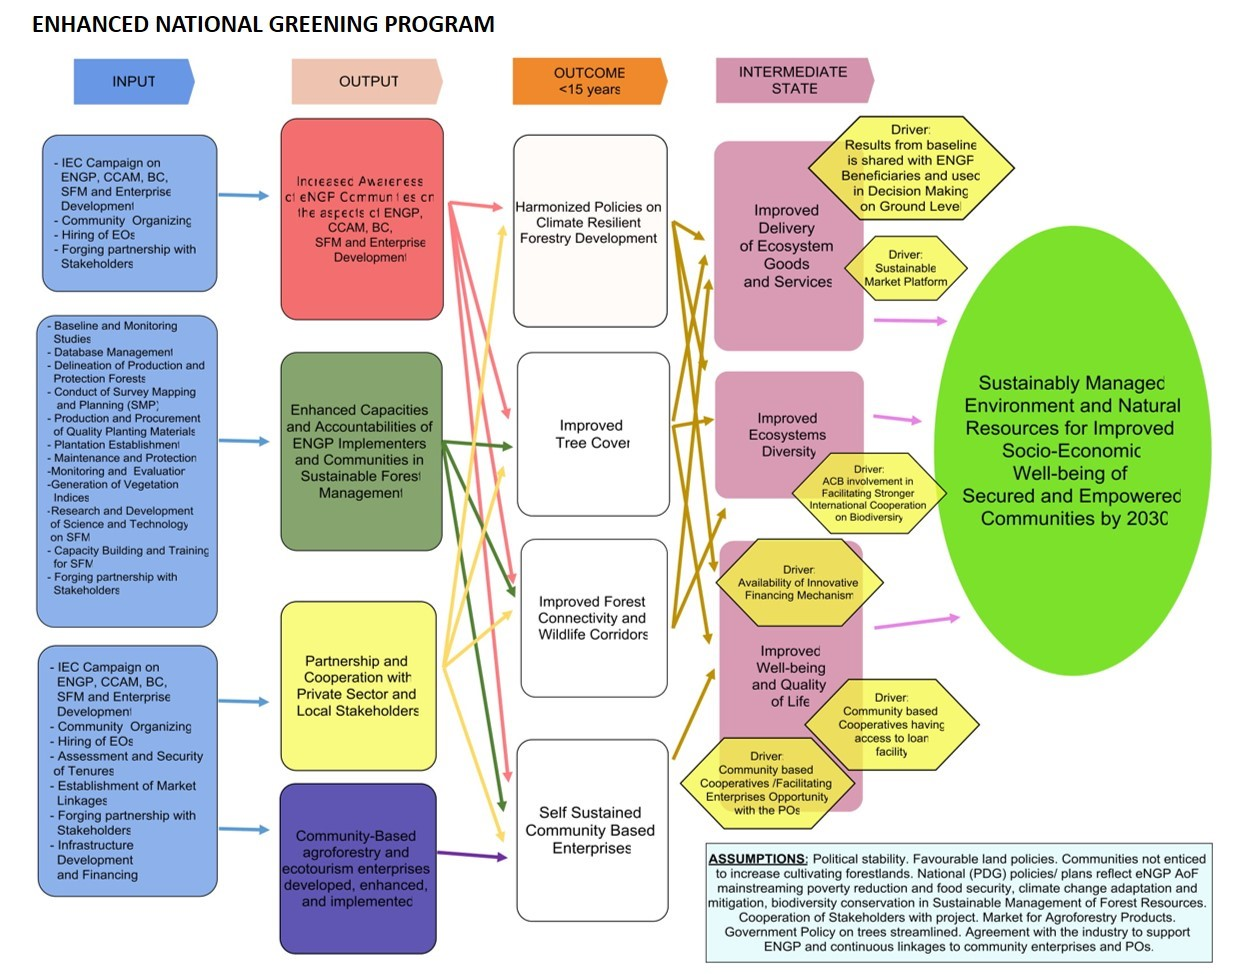 hight resolution of the draft theory of change developed for the enhanced national greening program source draft enhanced national greening program monitoring and evaluation